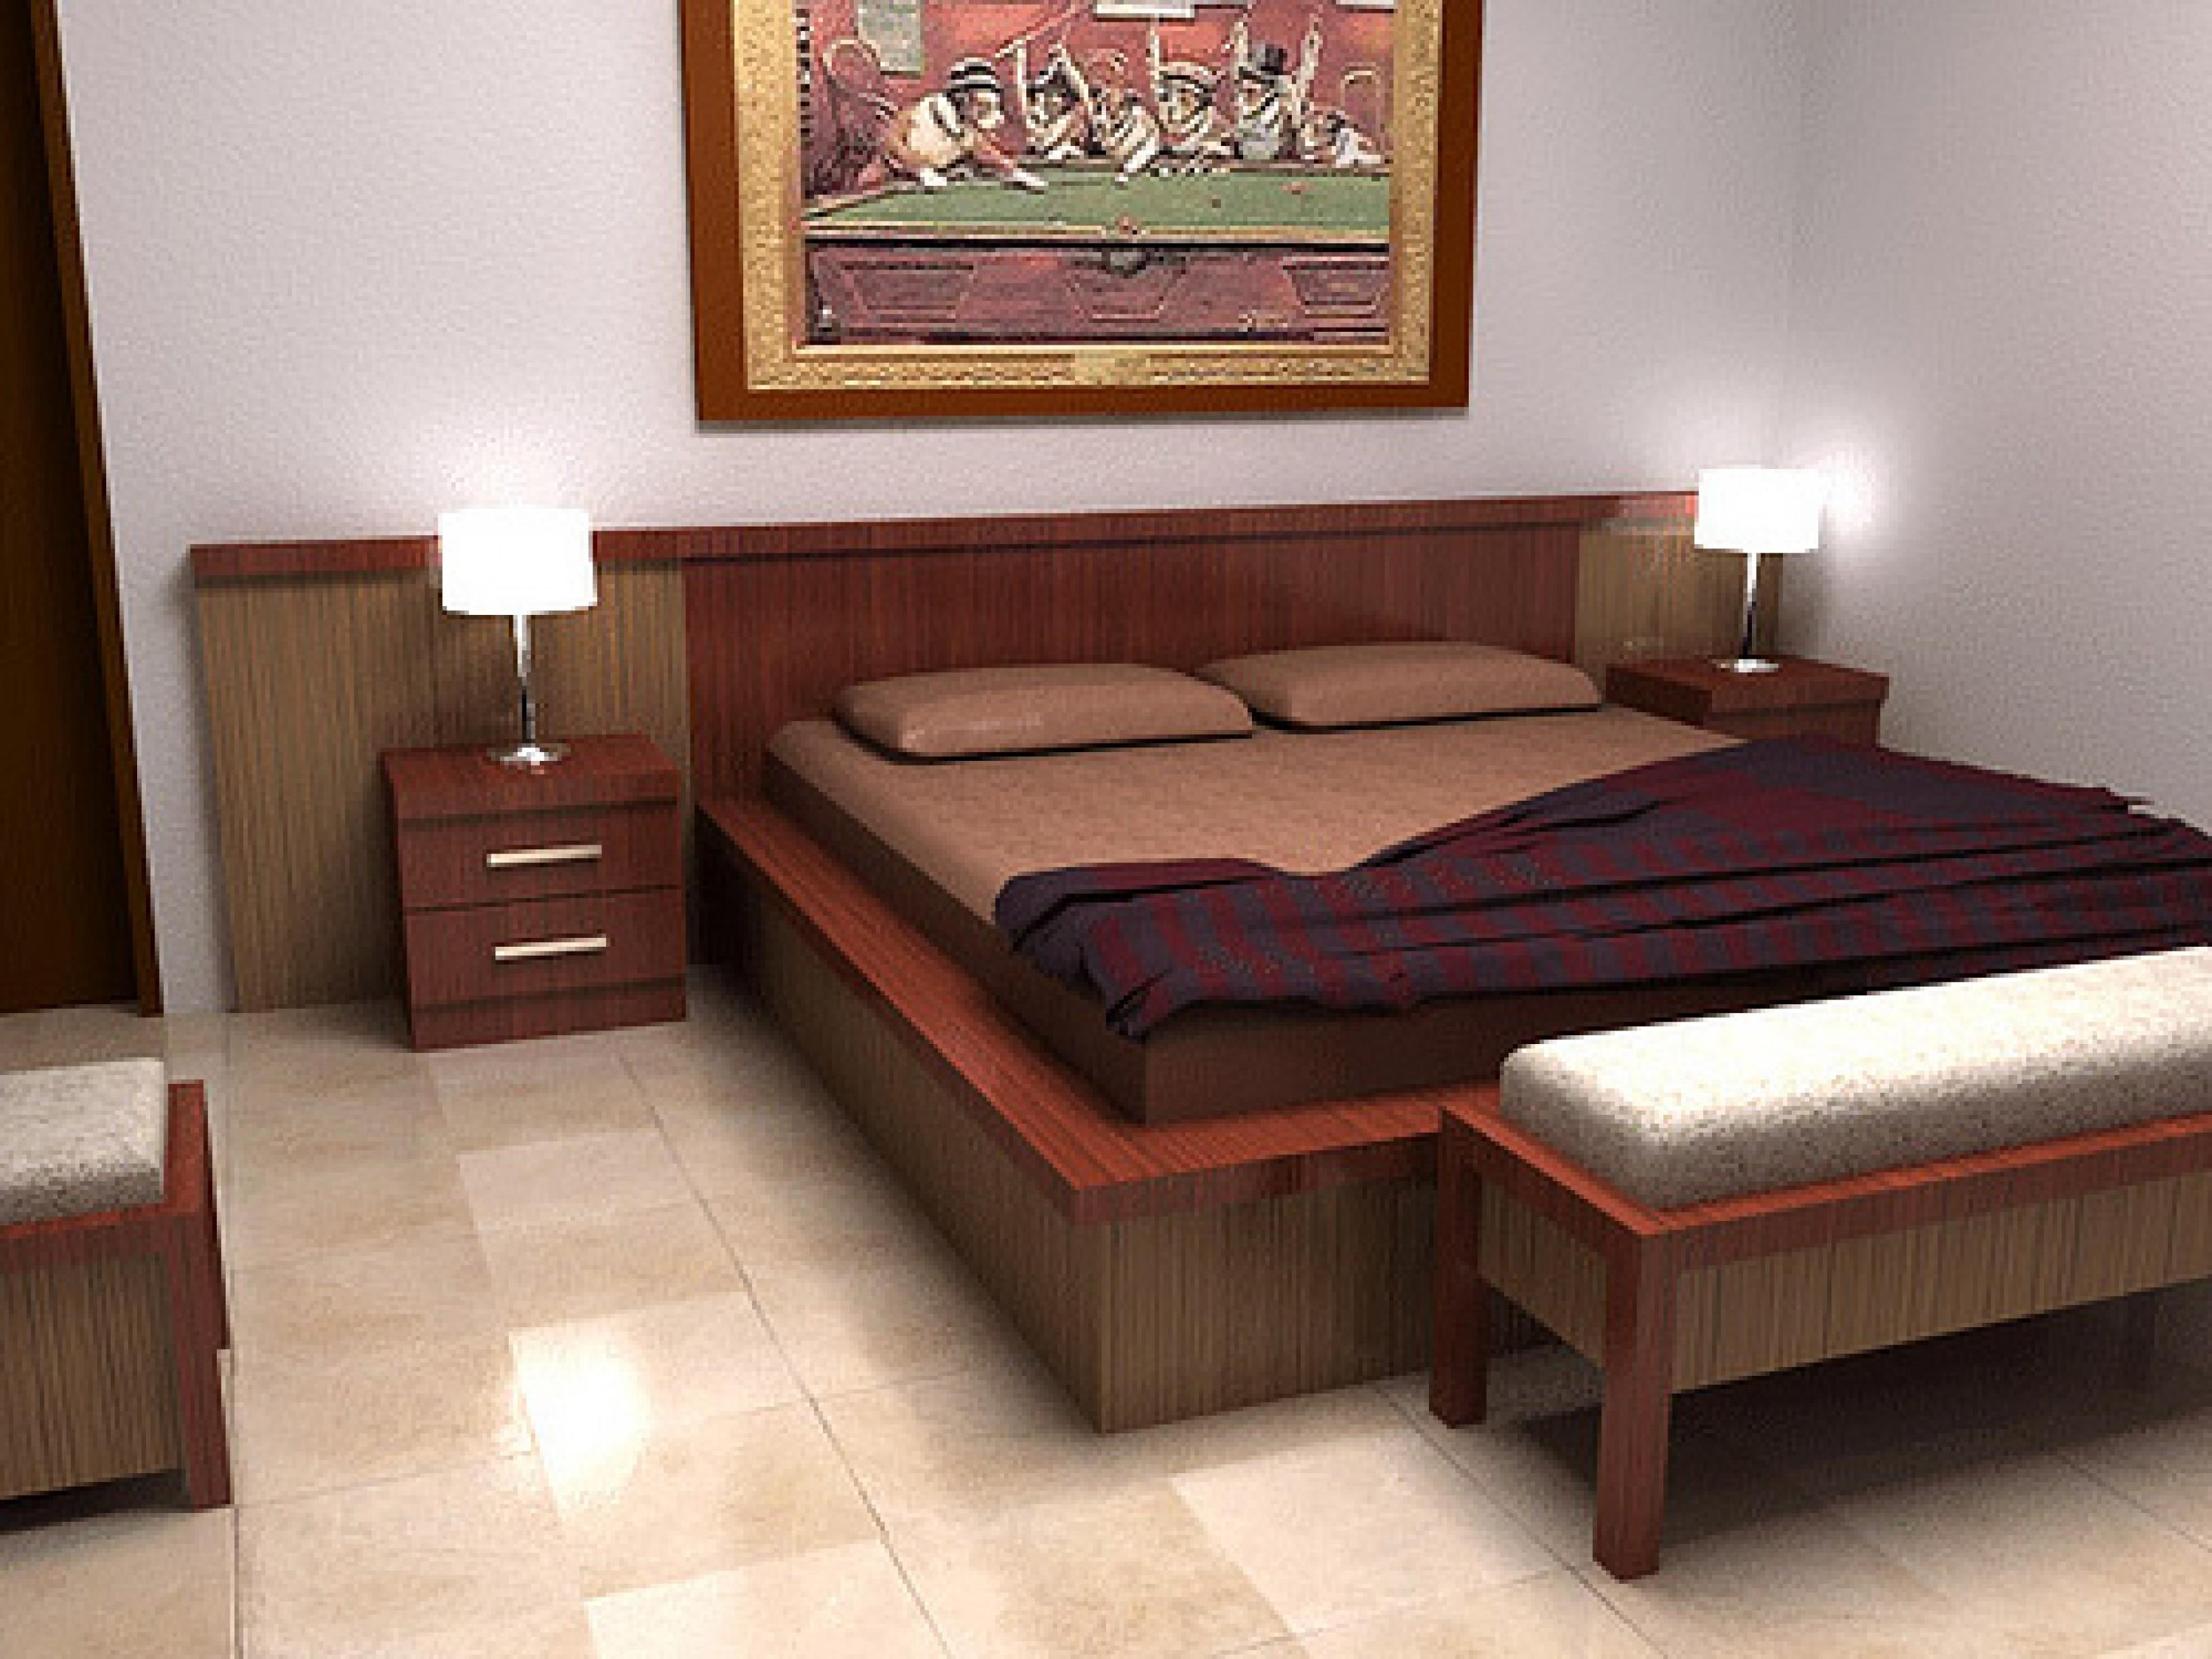 Glamorous Furniture Design Bed Latest 2016 8mcdo